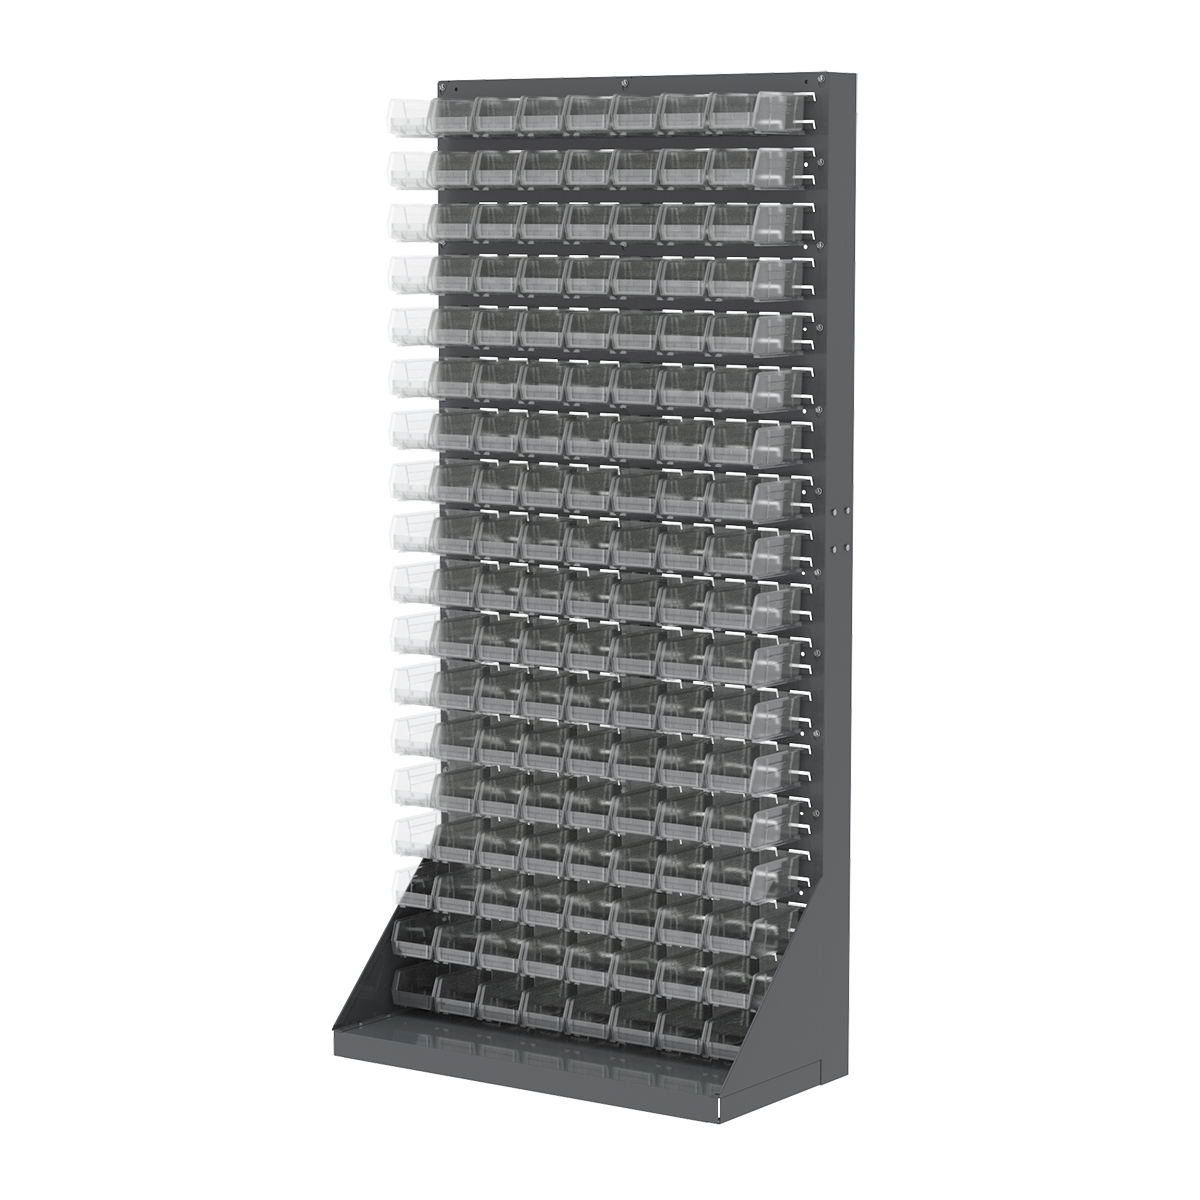 Item DISCONTINUED by Manufacturer.  Heavy-Duty Louvered Floor Rack, 1-Sided, 35-3/4 x 17 x 75, w/ 144 AkroBins 30220SCLAR, Gray/Clear (30651220SC).  This item sold in carton quantities of 1.